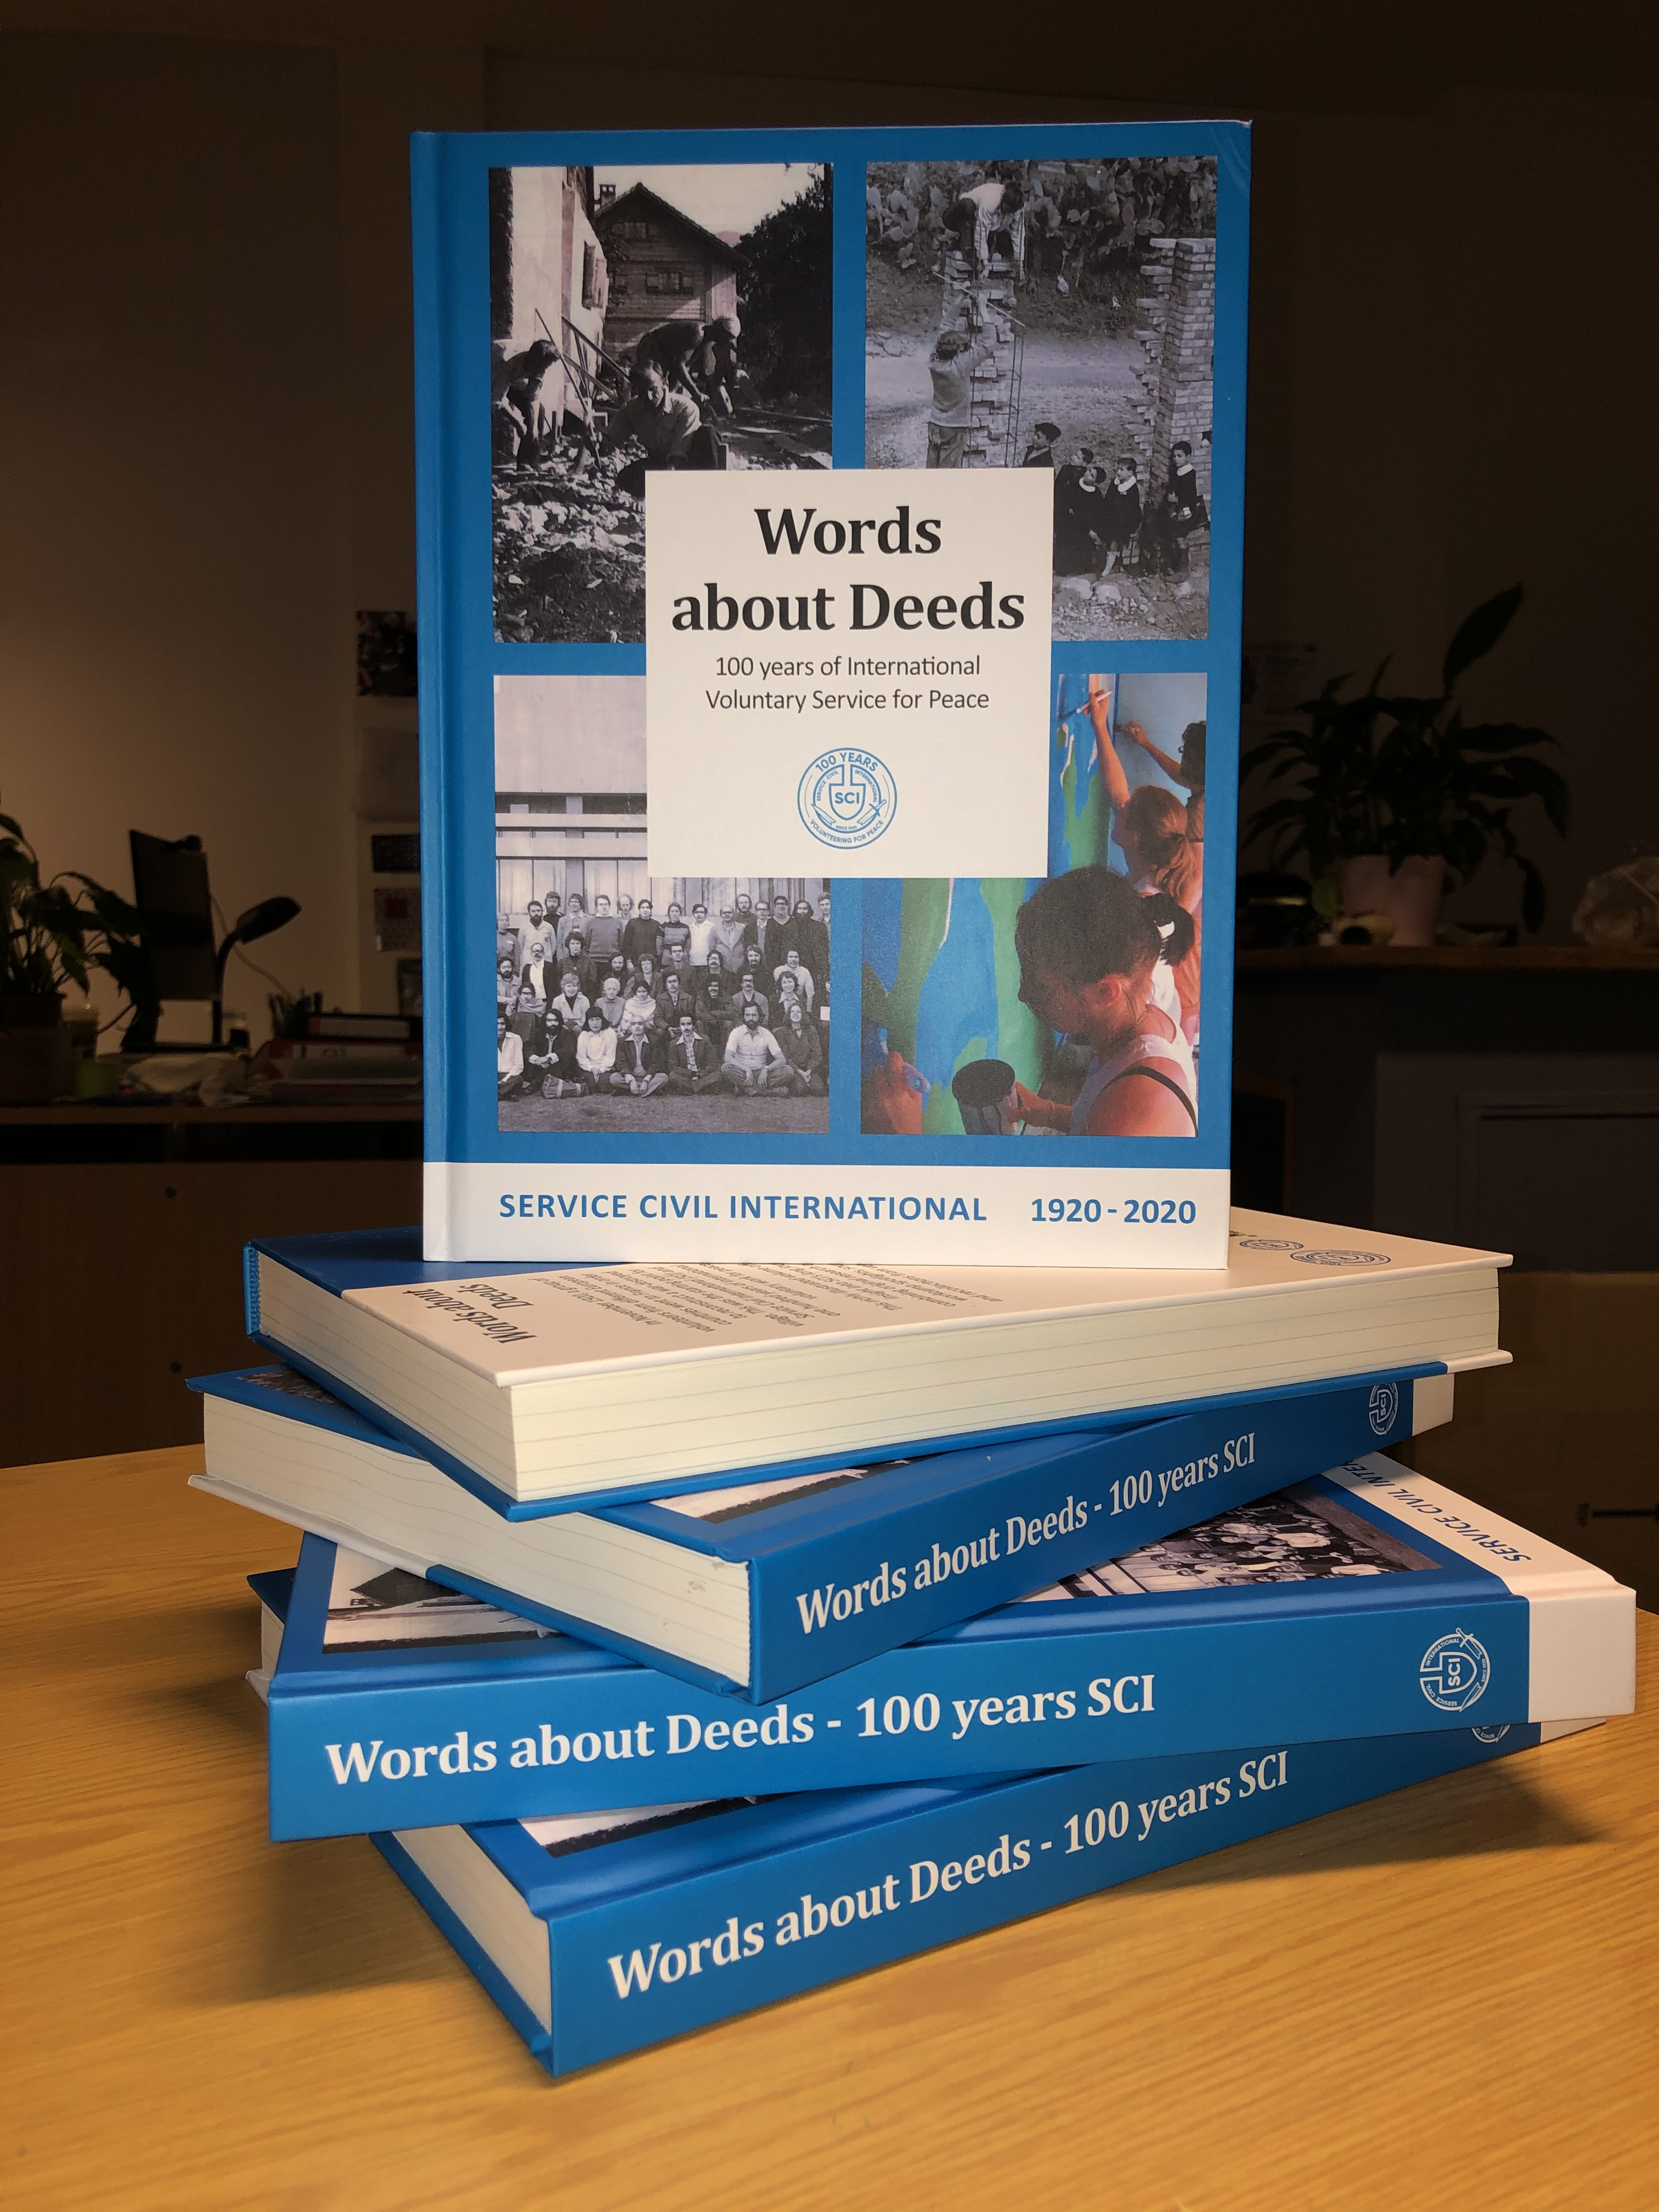 Words about Deeds. 100 years of International Voluntary Service for Peace